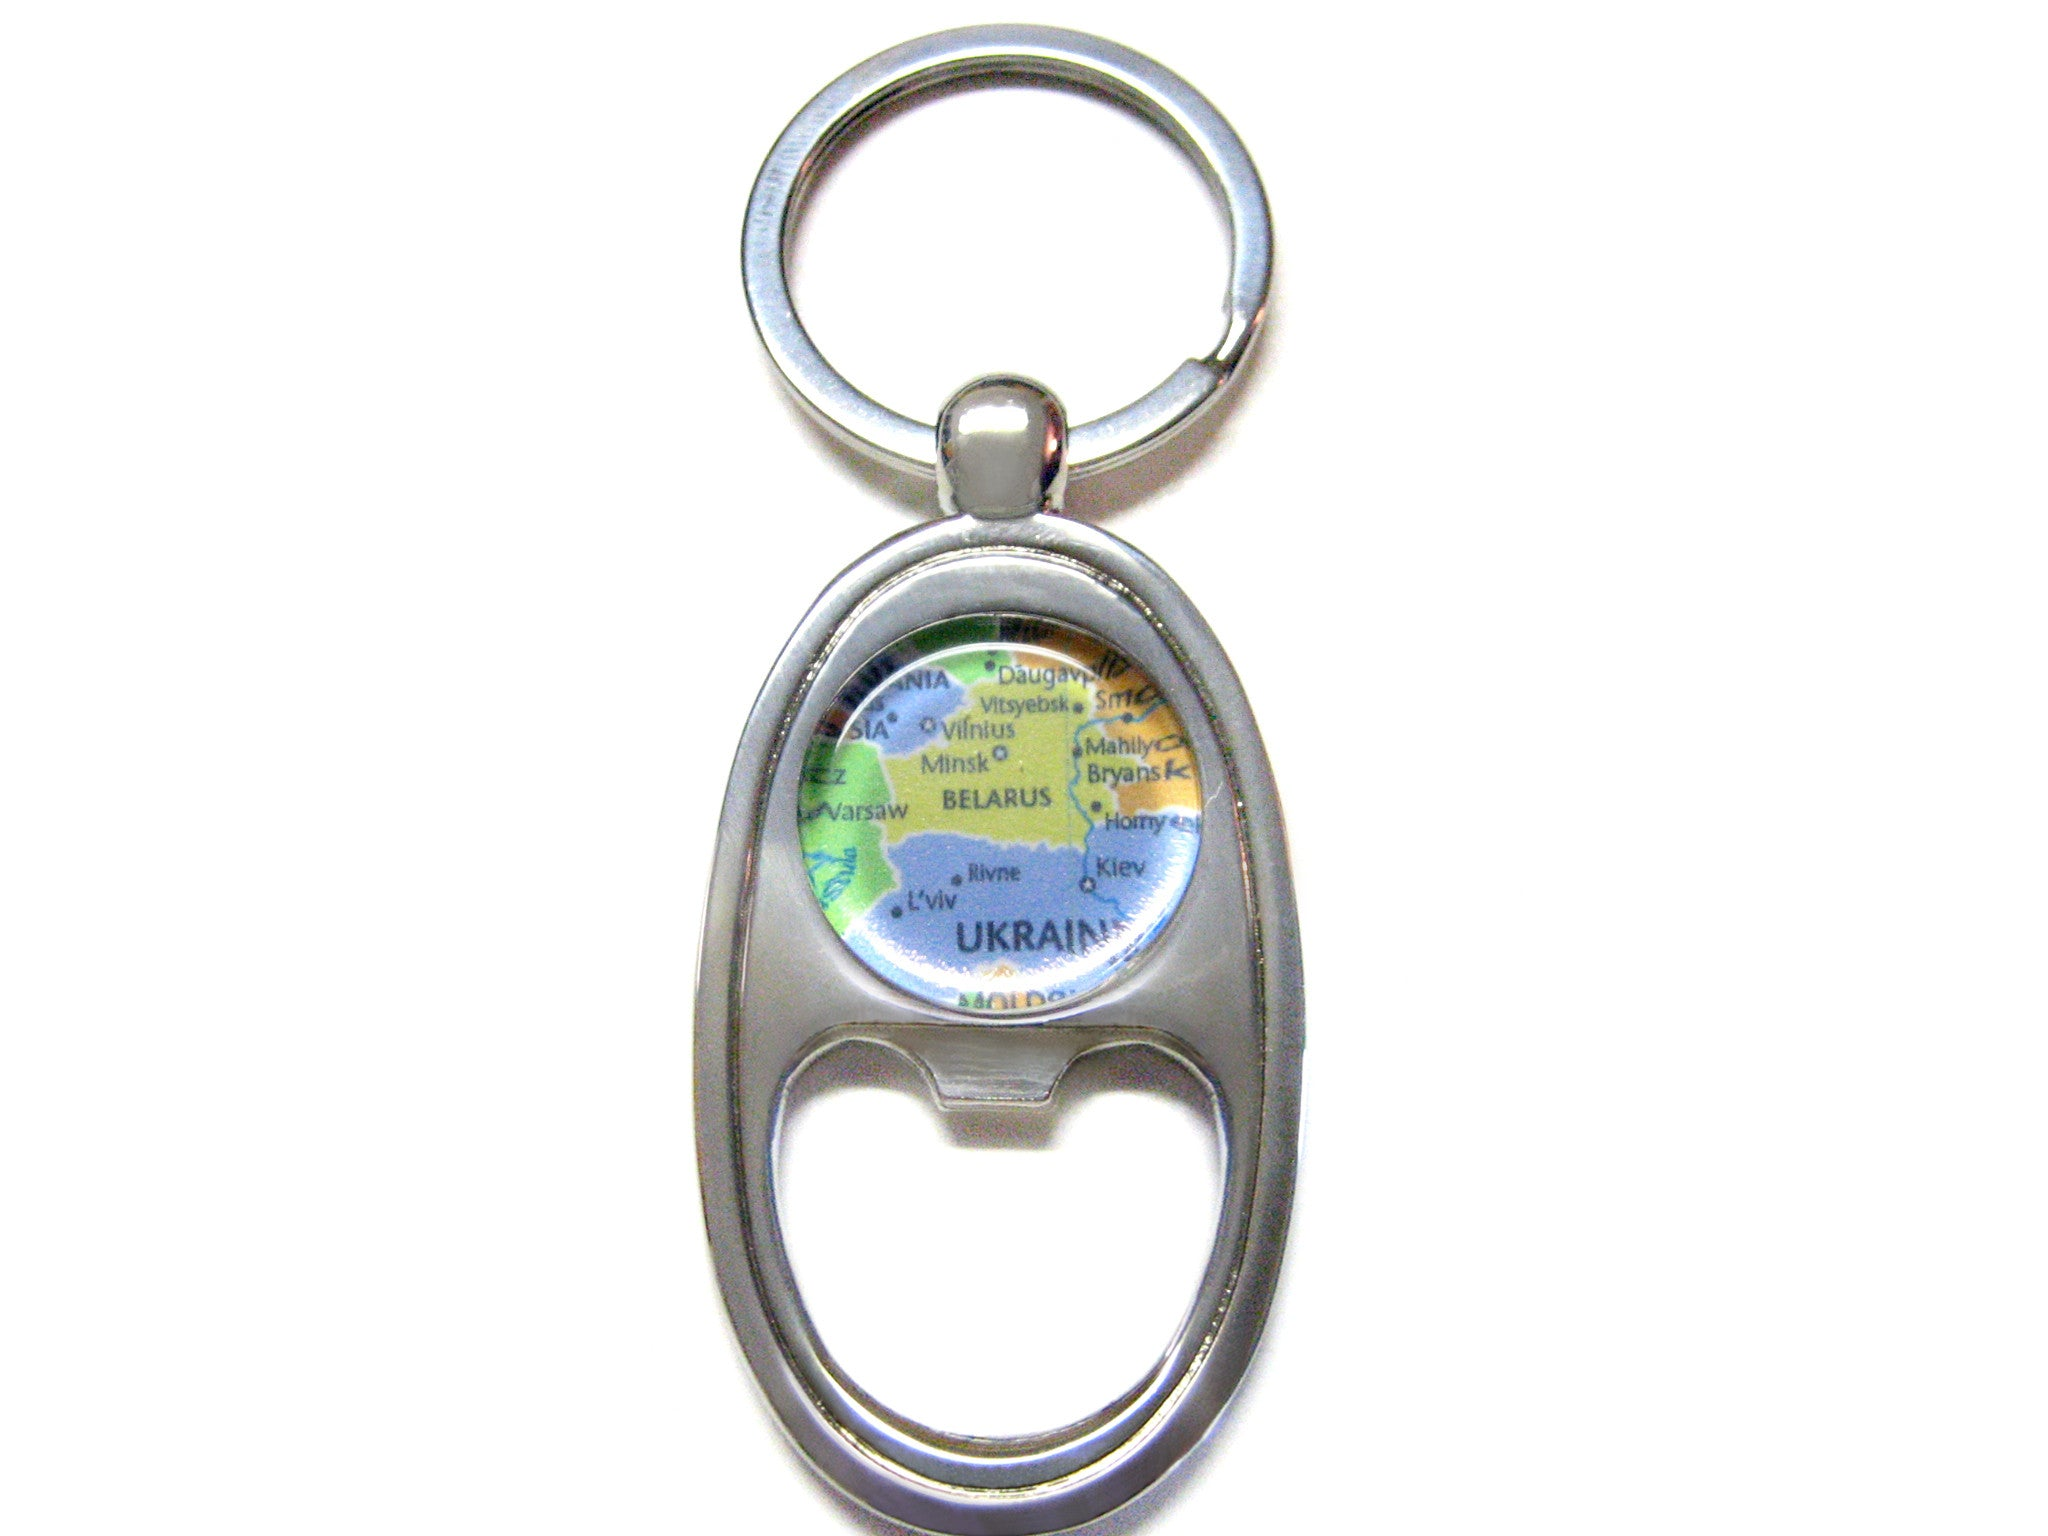 Belarus Map Bottle Opener Key Chain